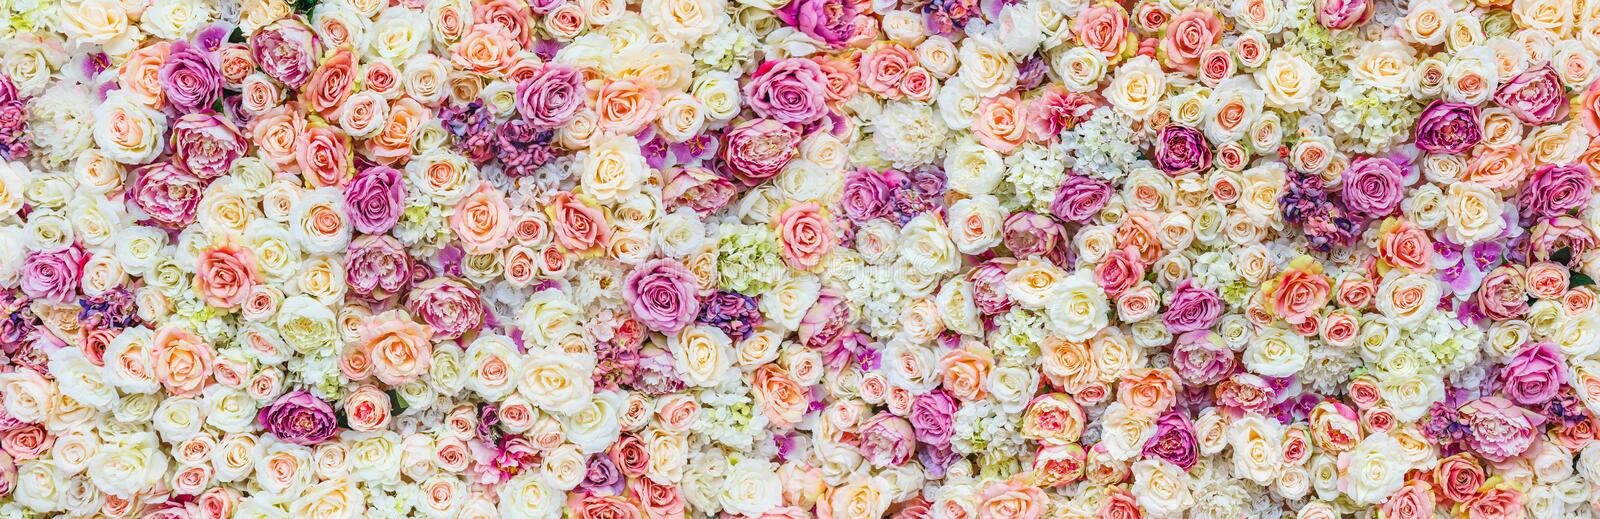 Download Flowers Wall Background With Amazing Red And White Roses, Wedding Decoration, Hand Made Stock Image - Image of made, birthday: 93172397